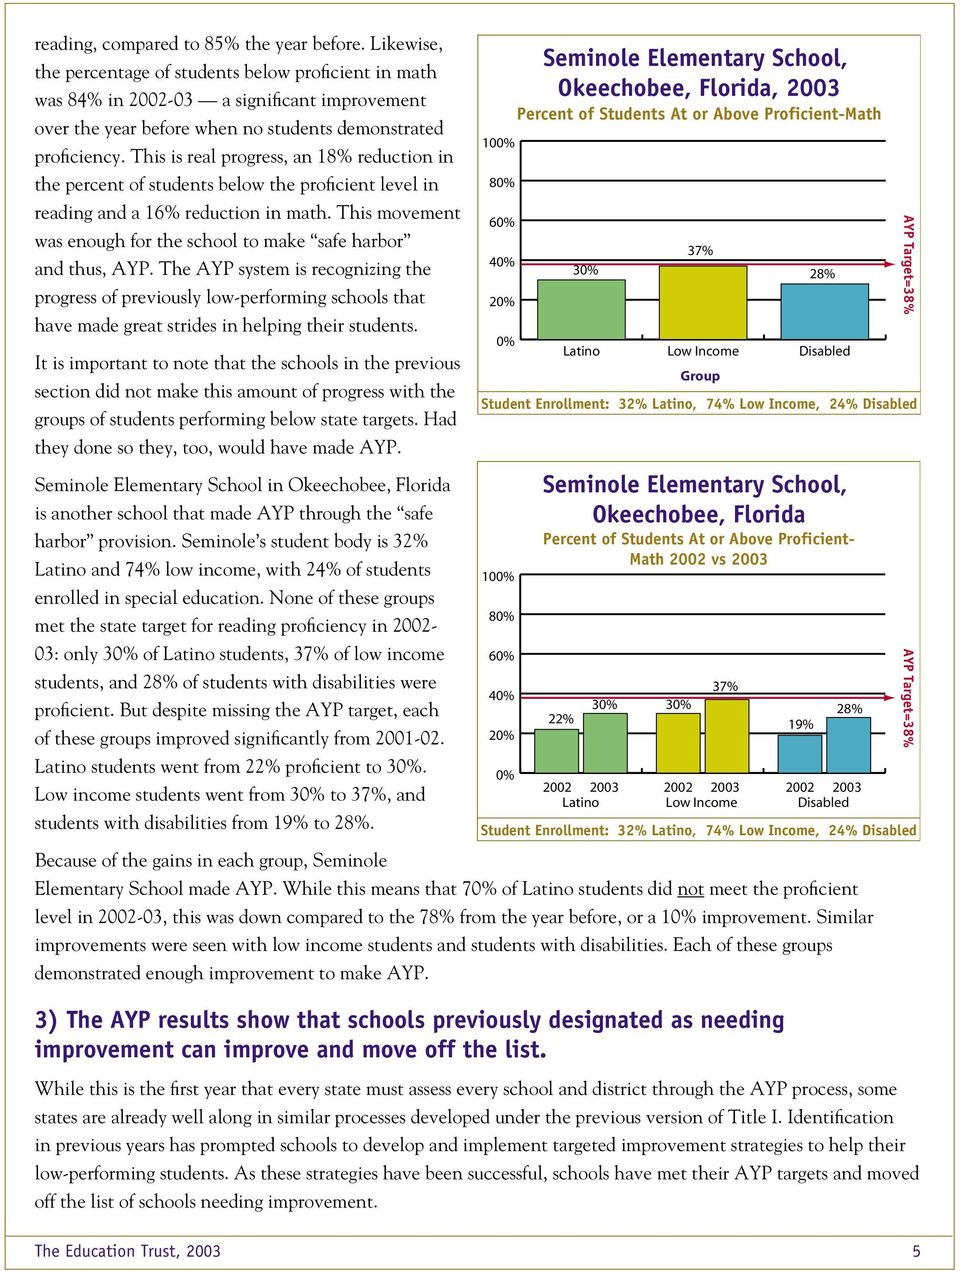 This is real progress, an 18% reduction in the percent of students below the proficient level in reading and a 16% reduction in math.